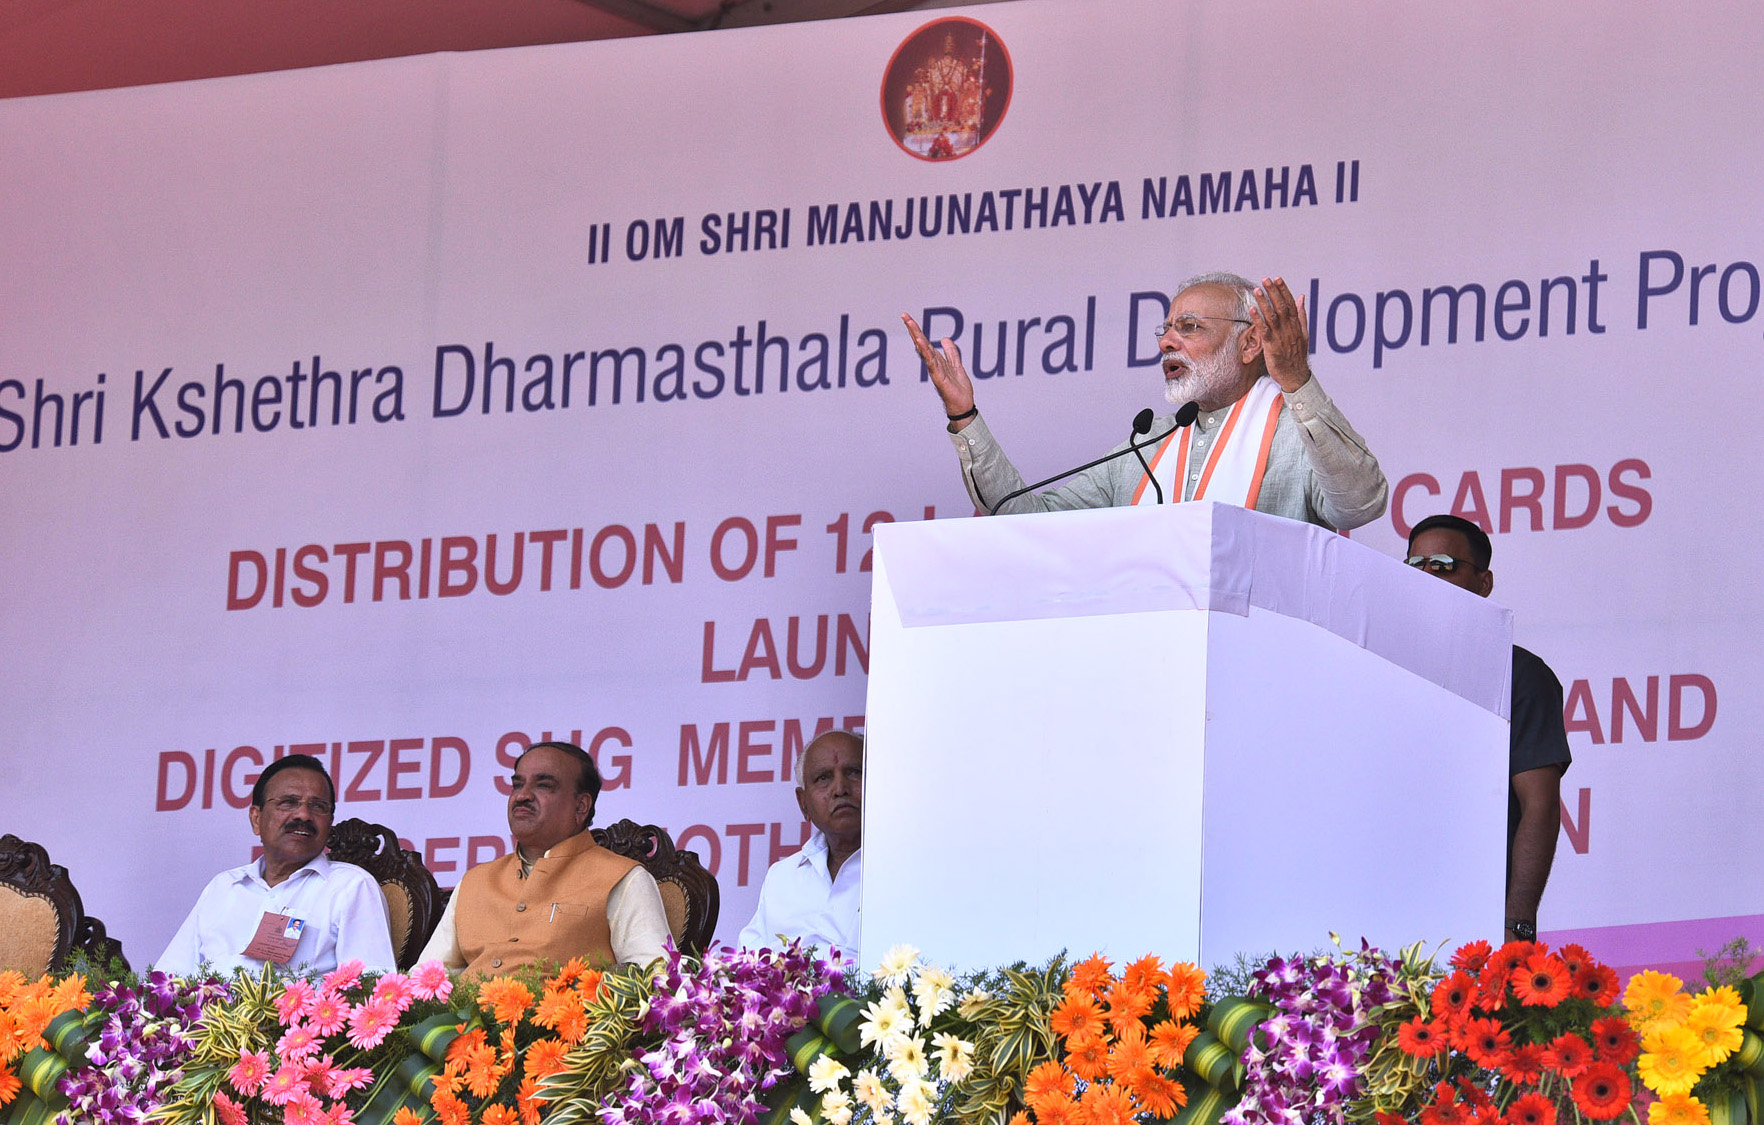 The Prime Minister, Shri Narendra Modi addressing a public meeting, at Ujire, in Karnataka on October 29, 2017. The Union Minister for Statistics and Programme Implementation, Shri D.V. Sadananda Gowda and the Union Minister for Chemicals & Fertilizers and Parliamentary Affairs, Shri Ananth Kumar are also seen.